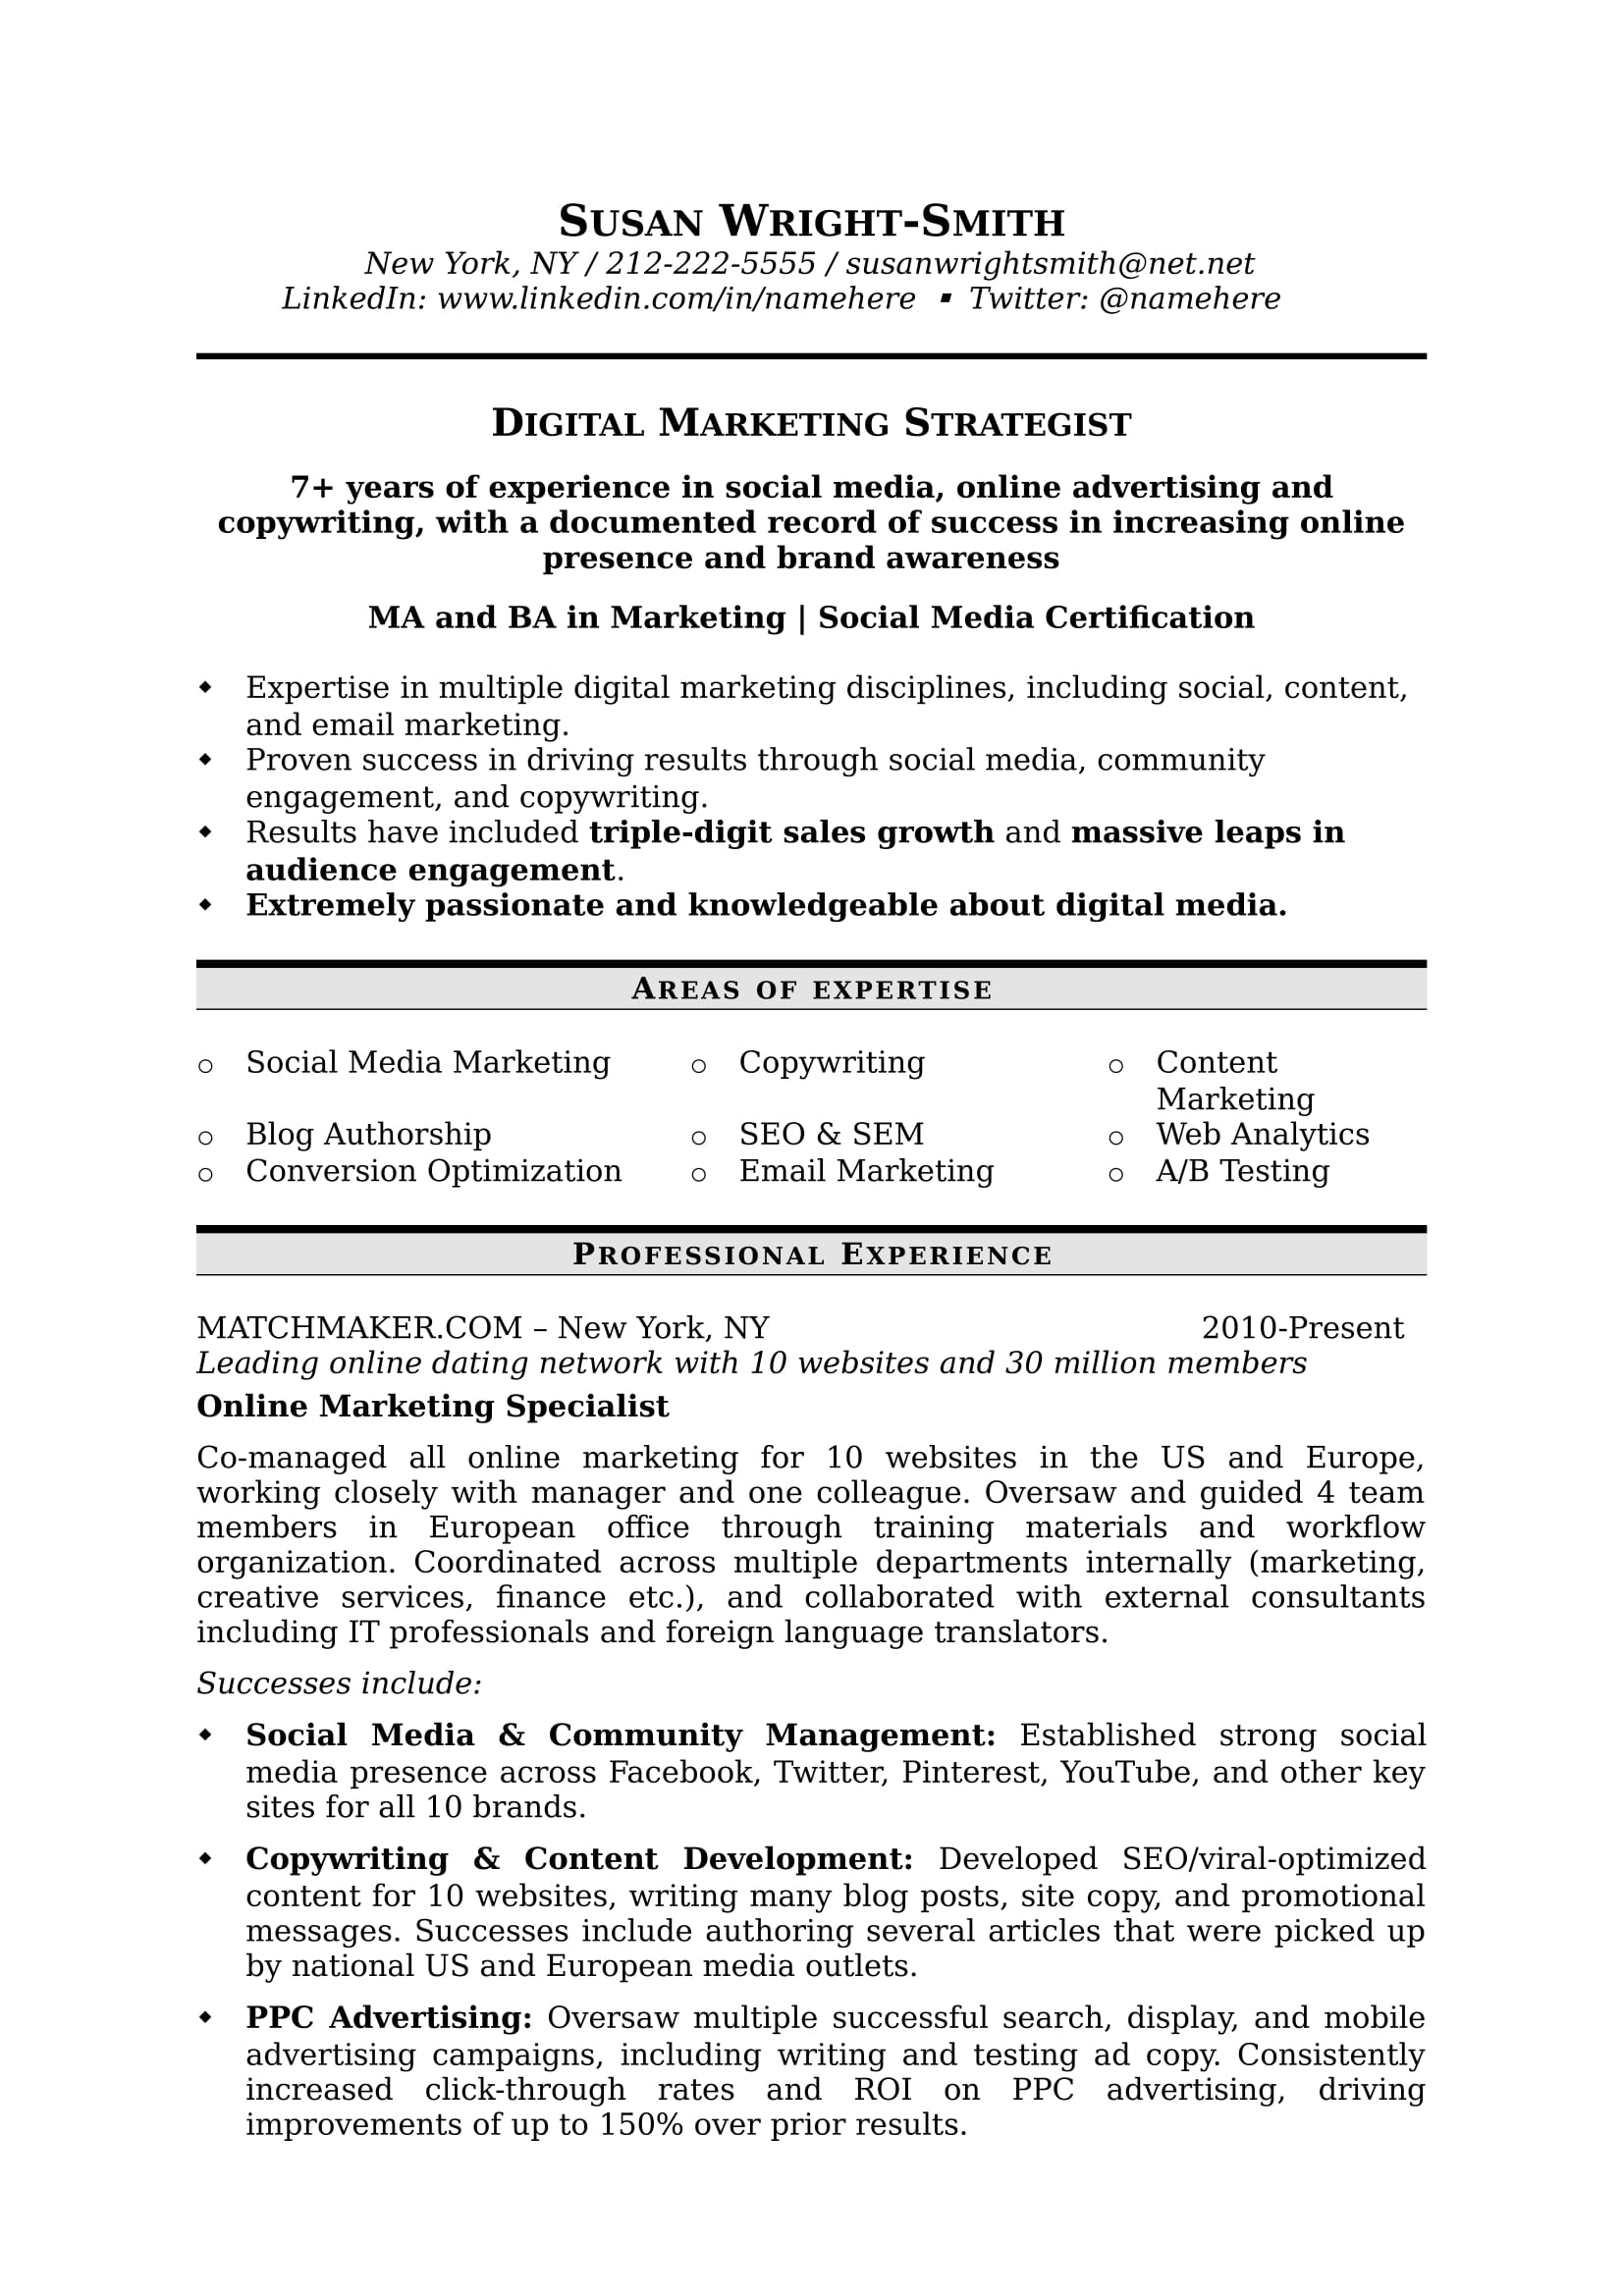 How To Write A Marketing Resume Hiring Managers Will Notice [Free